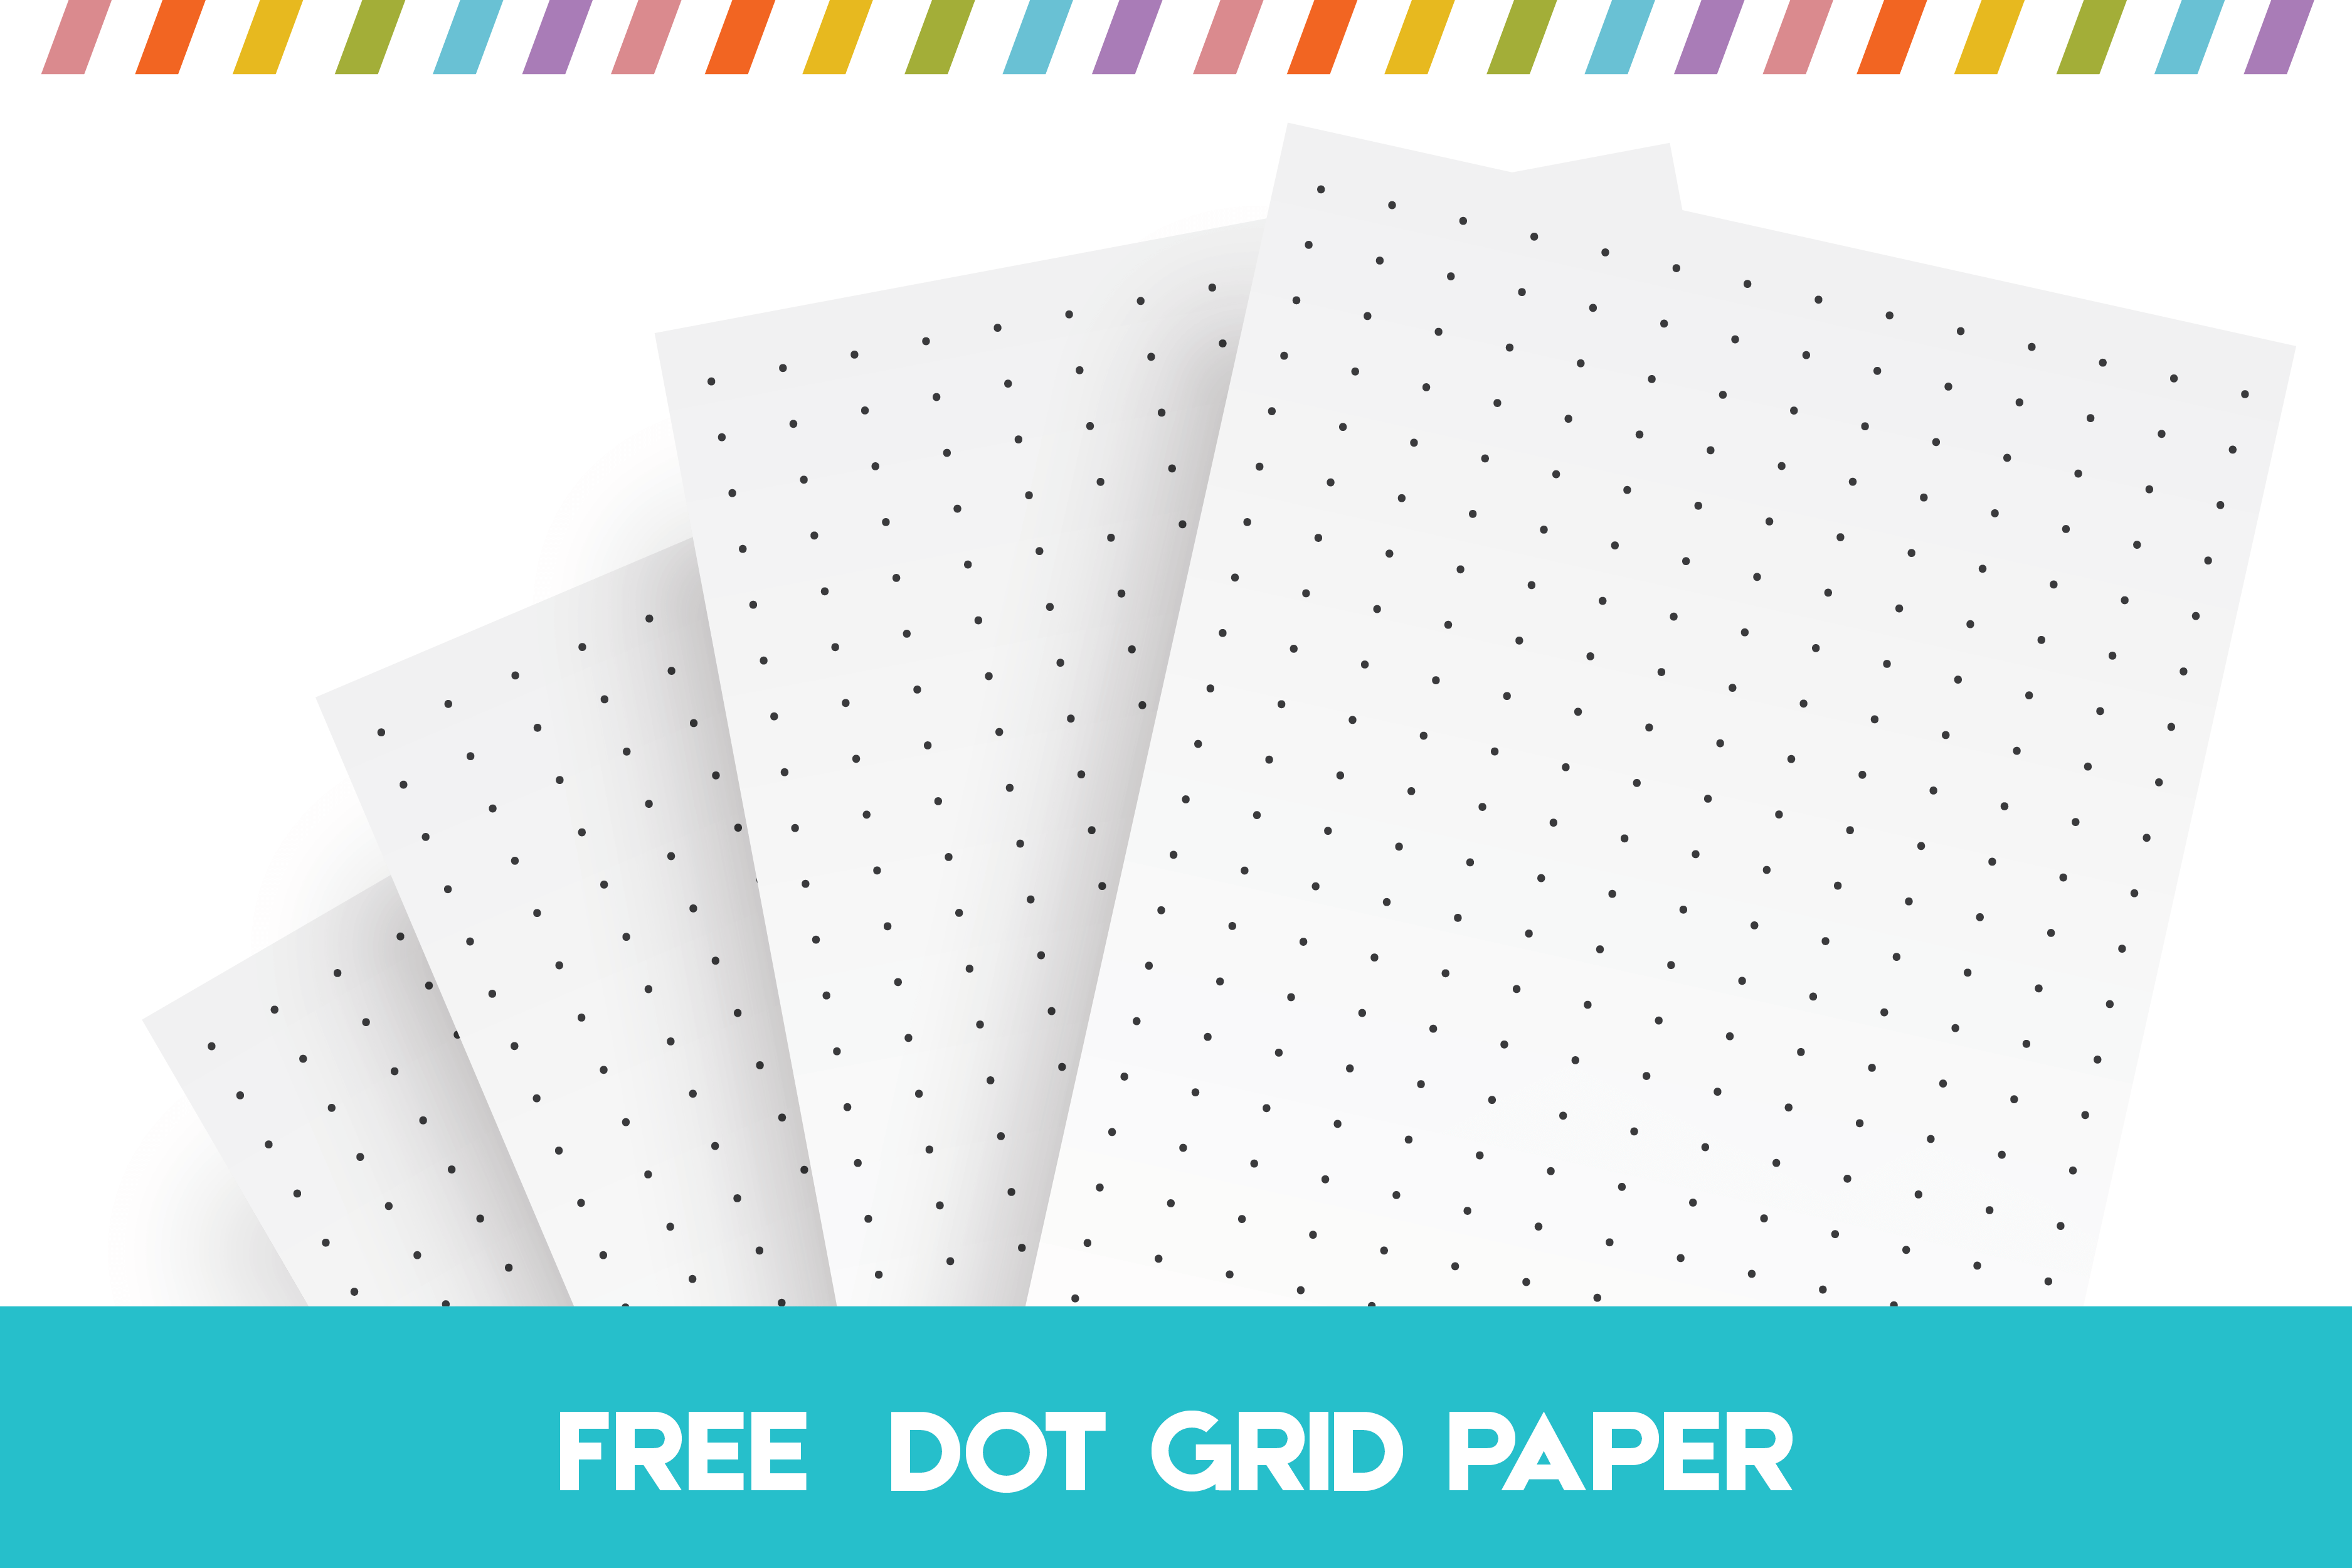 image regarding Printable Dot Grid referred to as Cost-free Printable Dot Grid Paper For Bullet Publications And Notes